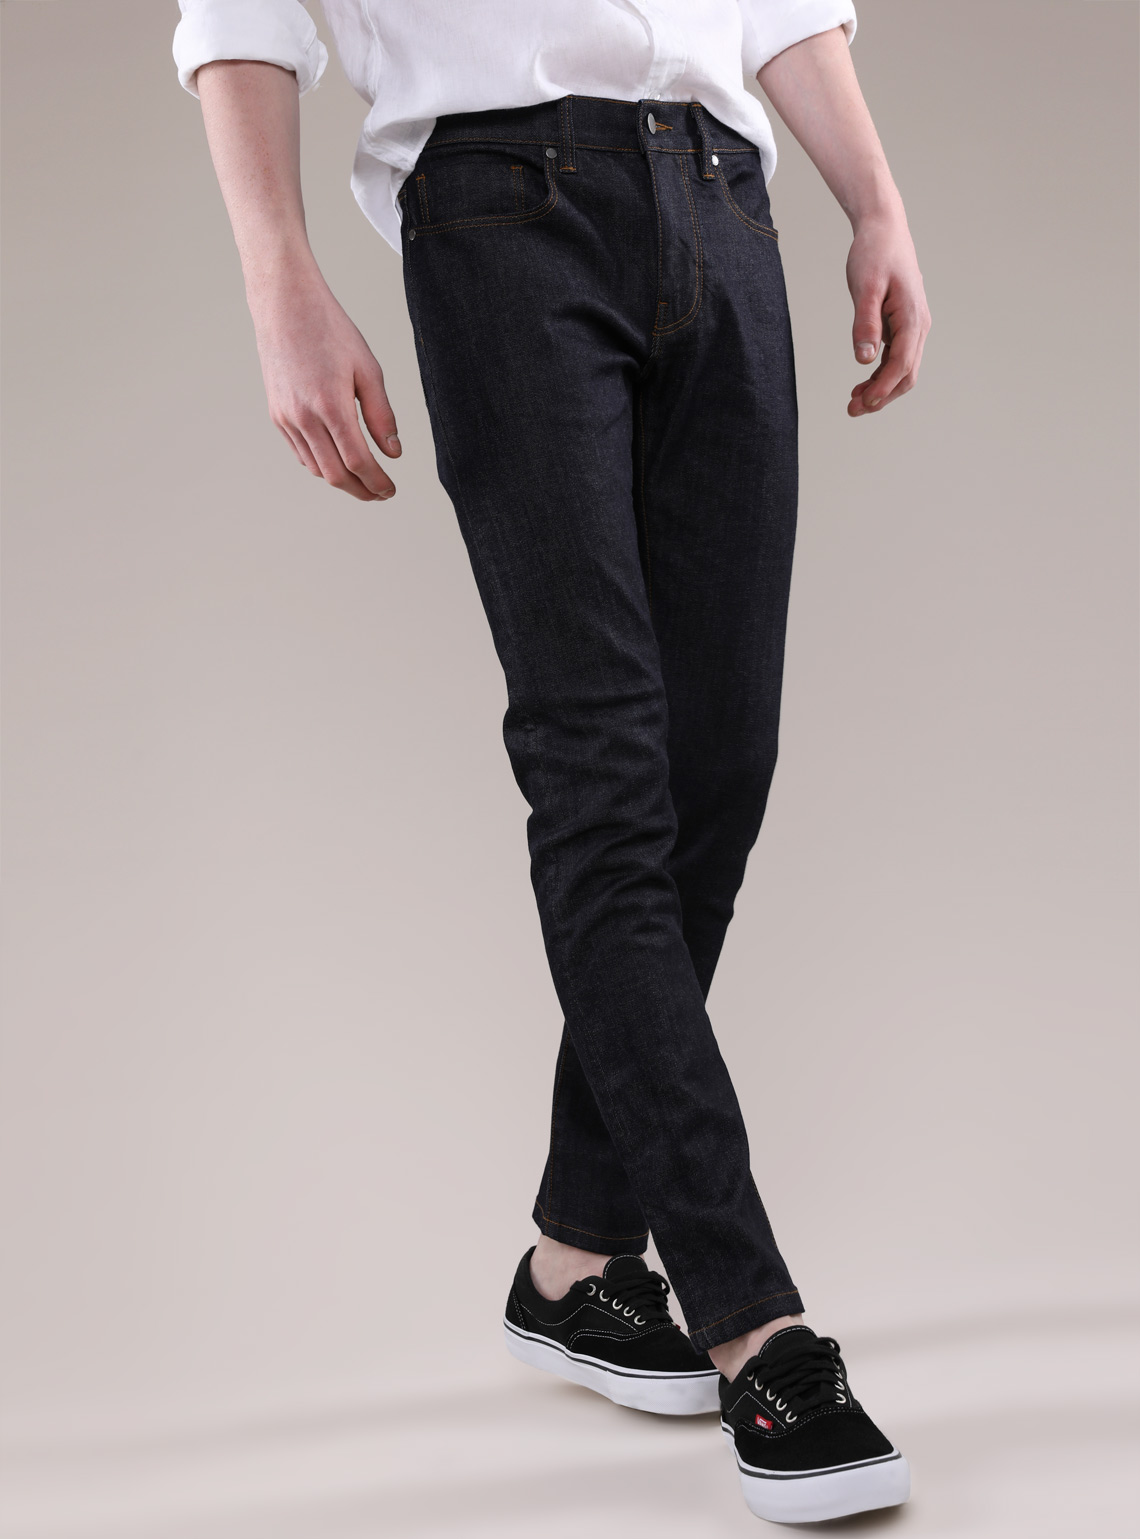 Men's Japanese Denim Extra Slim Jeans